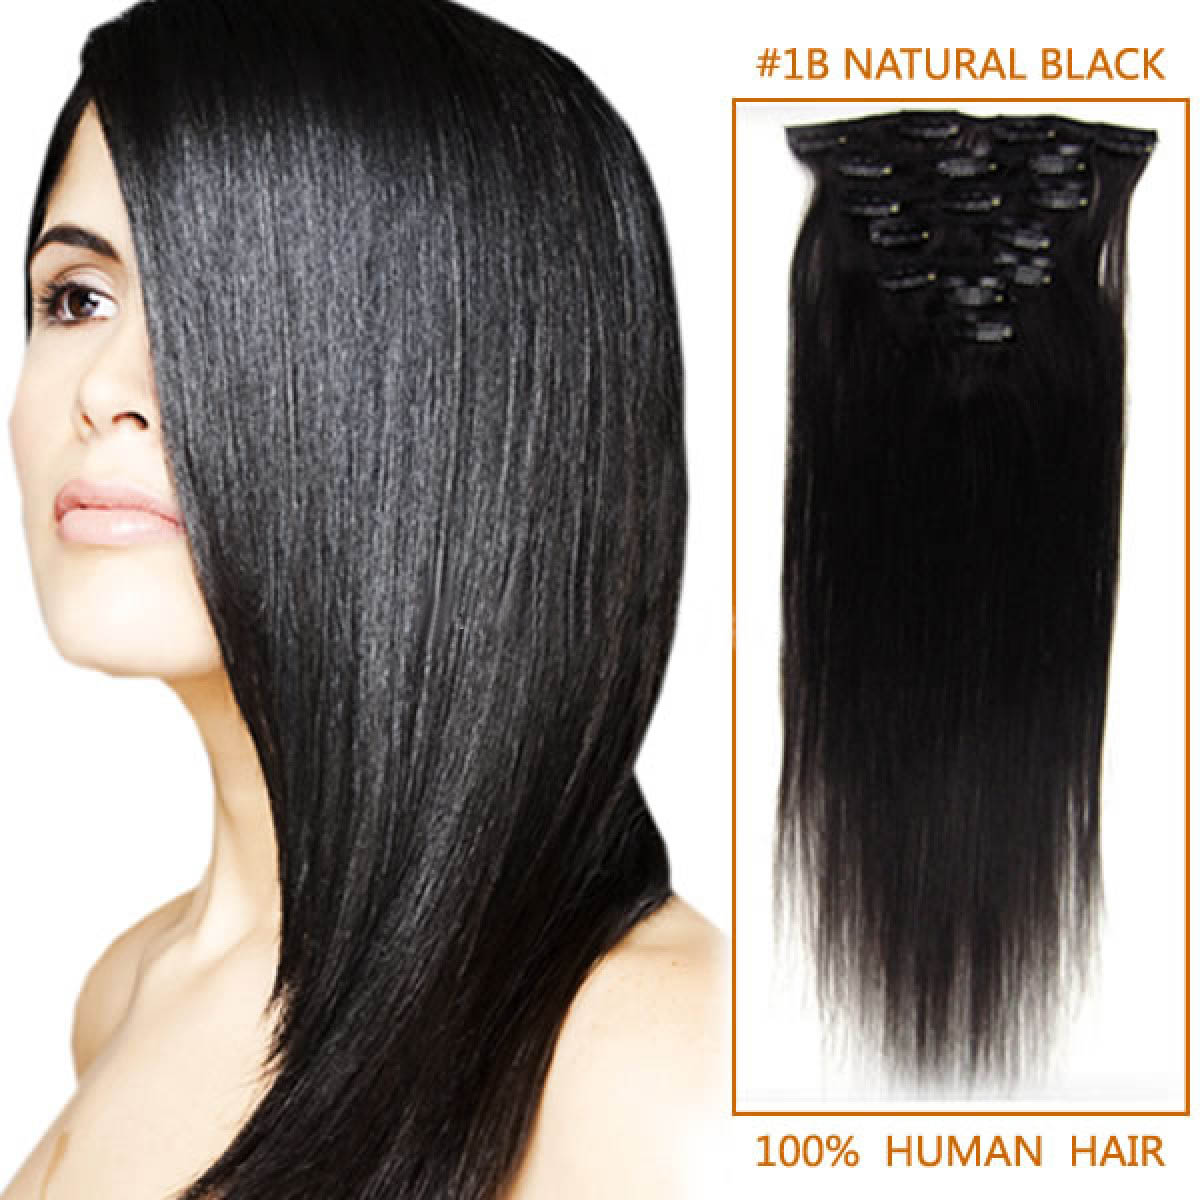 24 Inch #1b Natural Black Clip In Remy Human Hair Extensions 9pcs